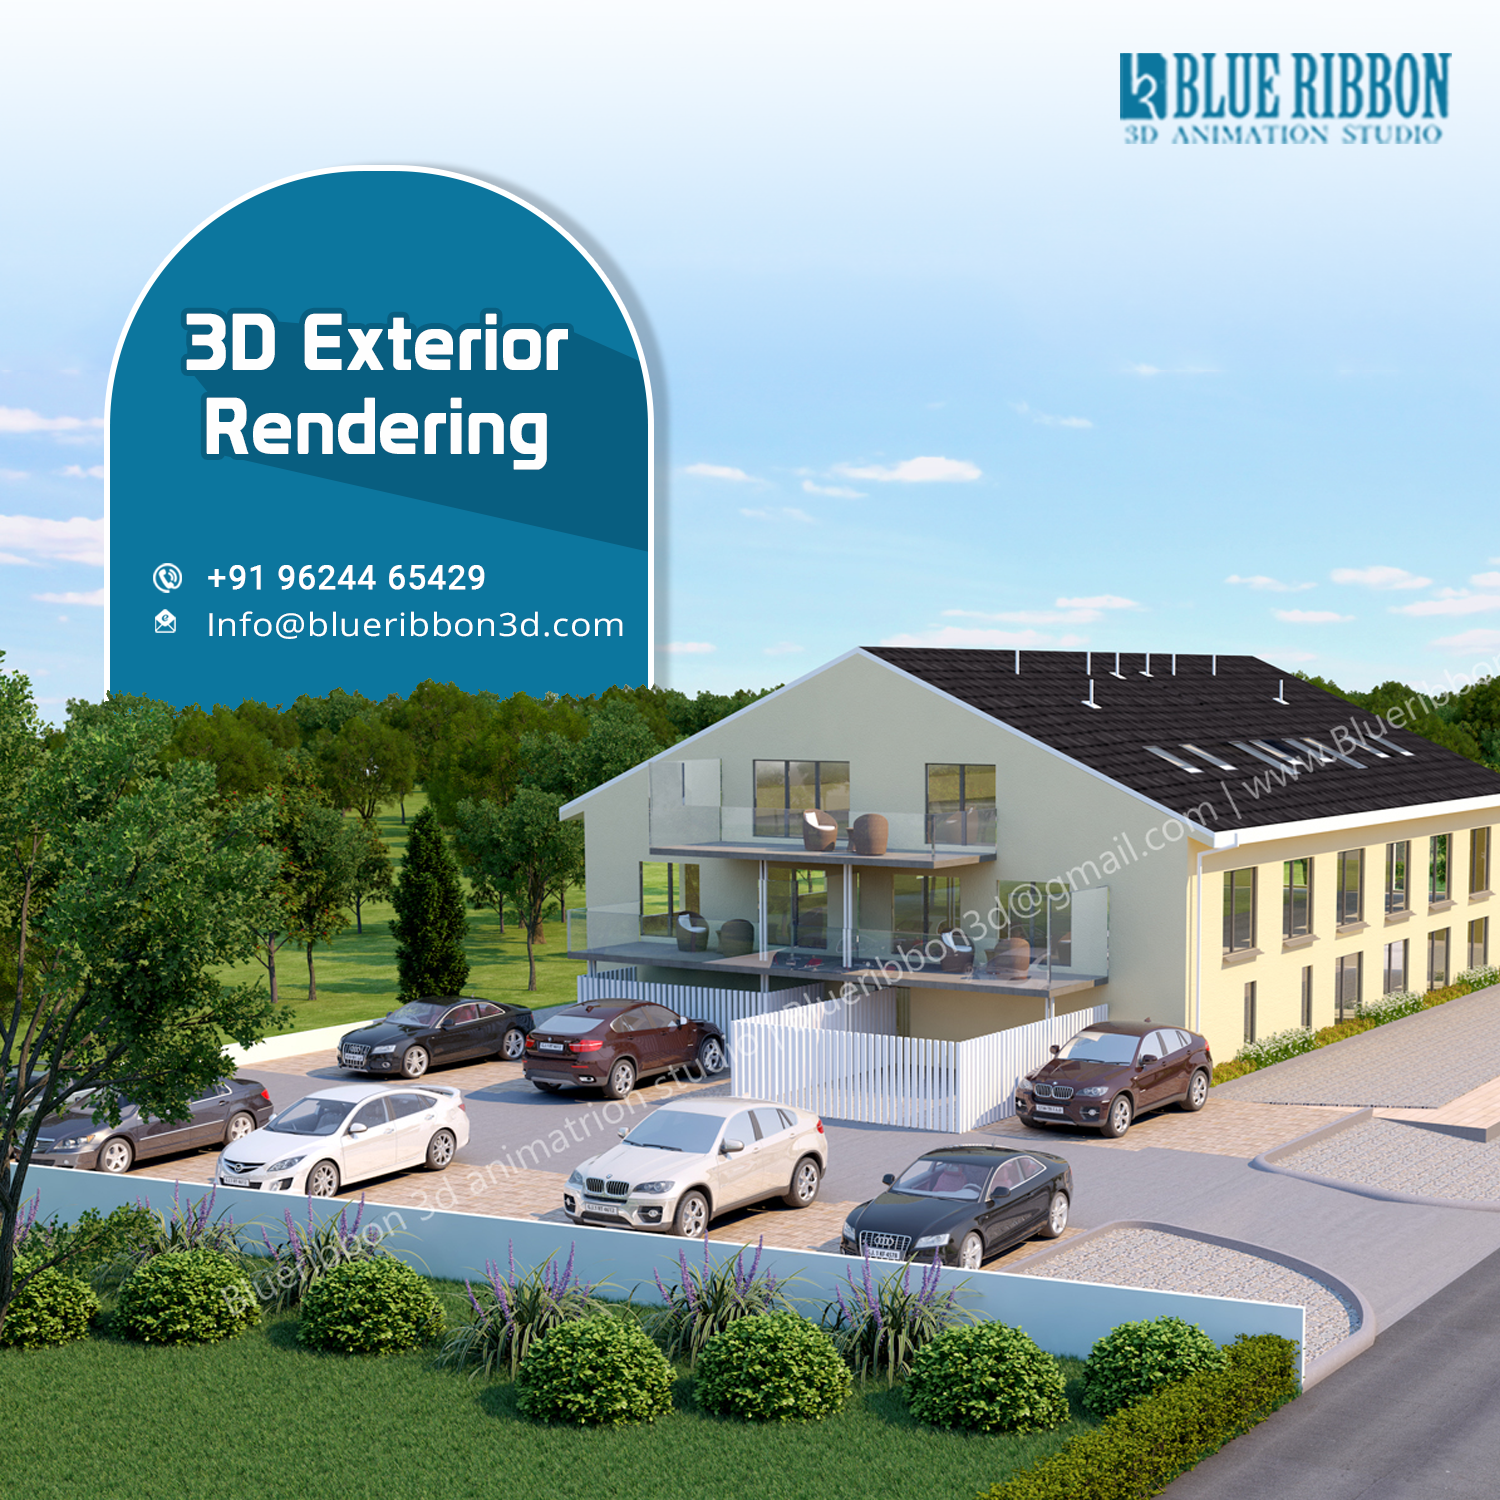 Residential Exterior Services: Covert Your Ideas Into Reality With 3D Rendering Services